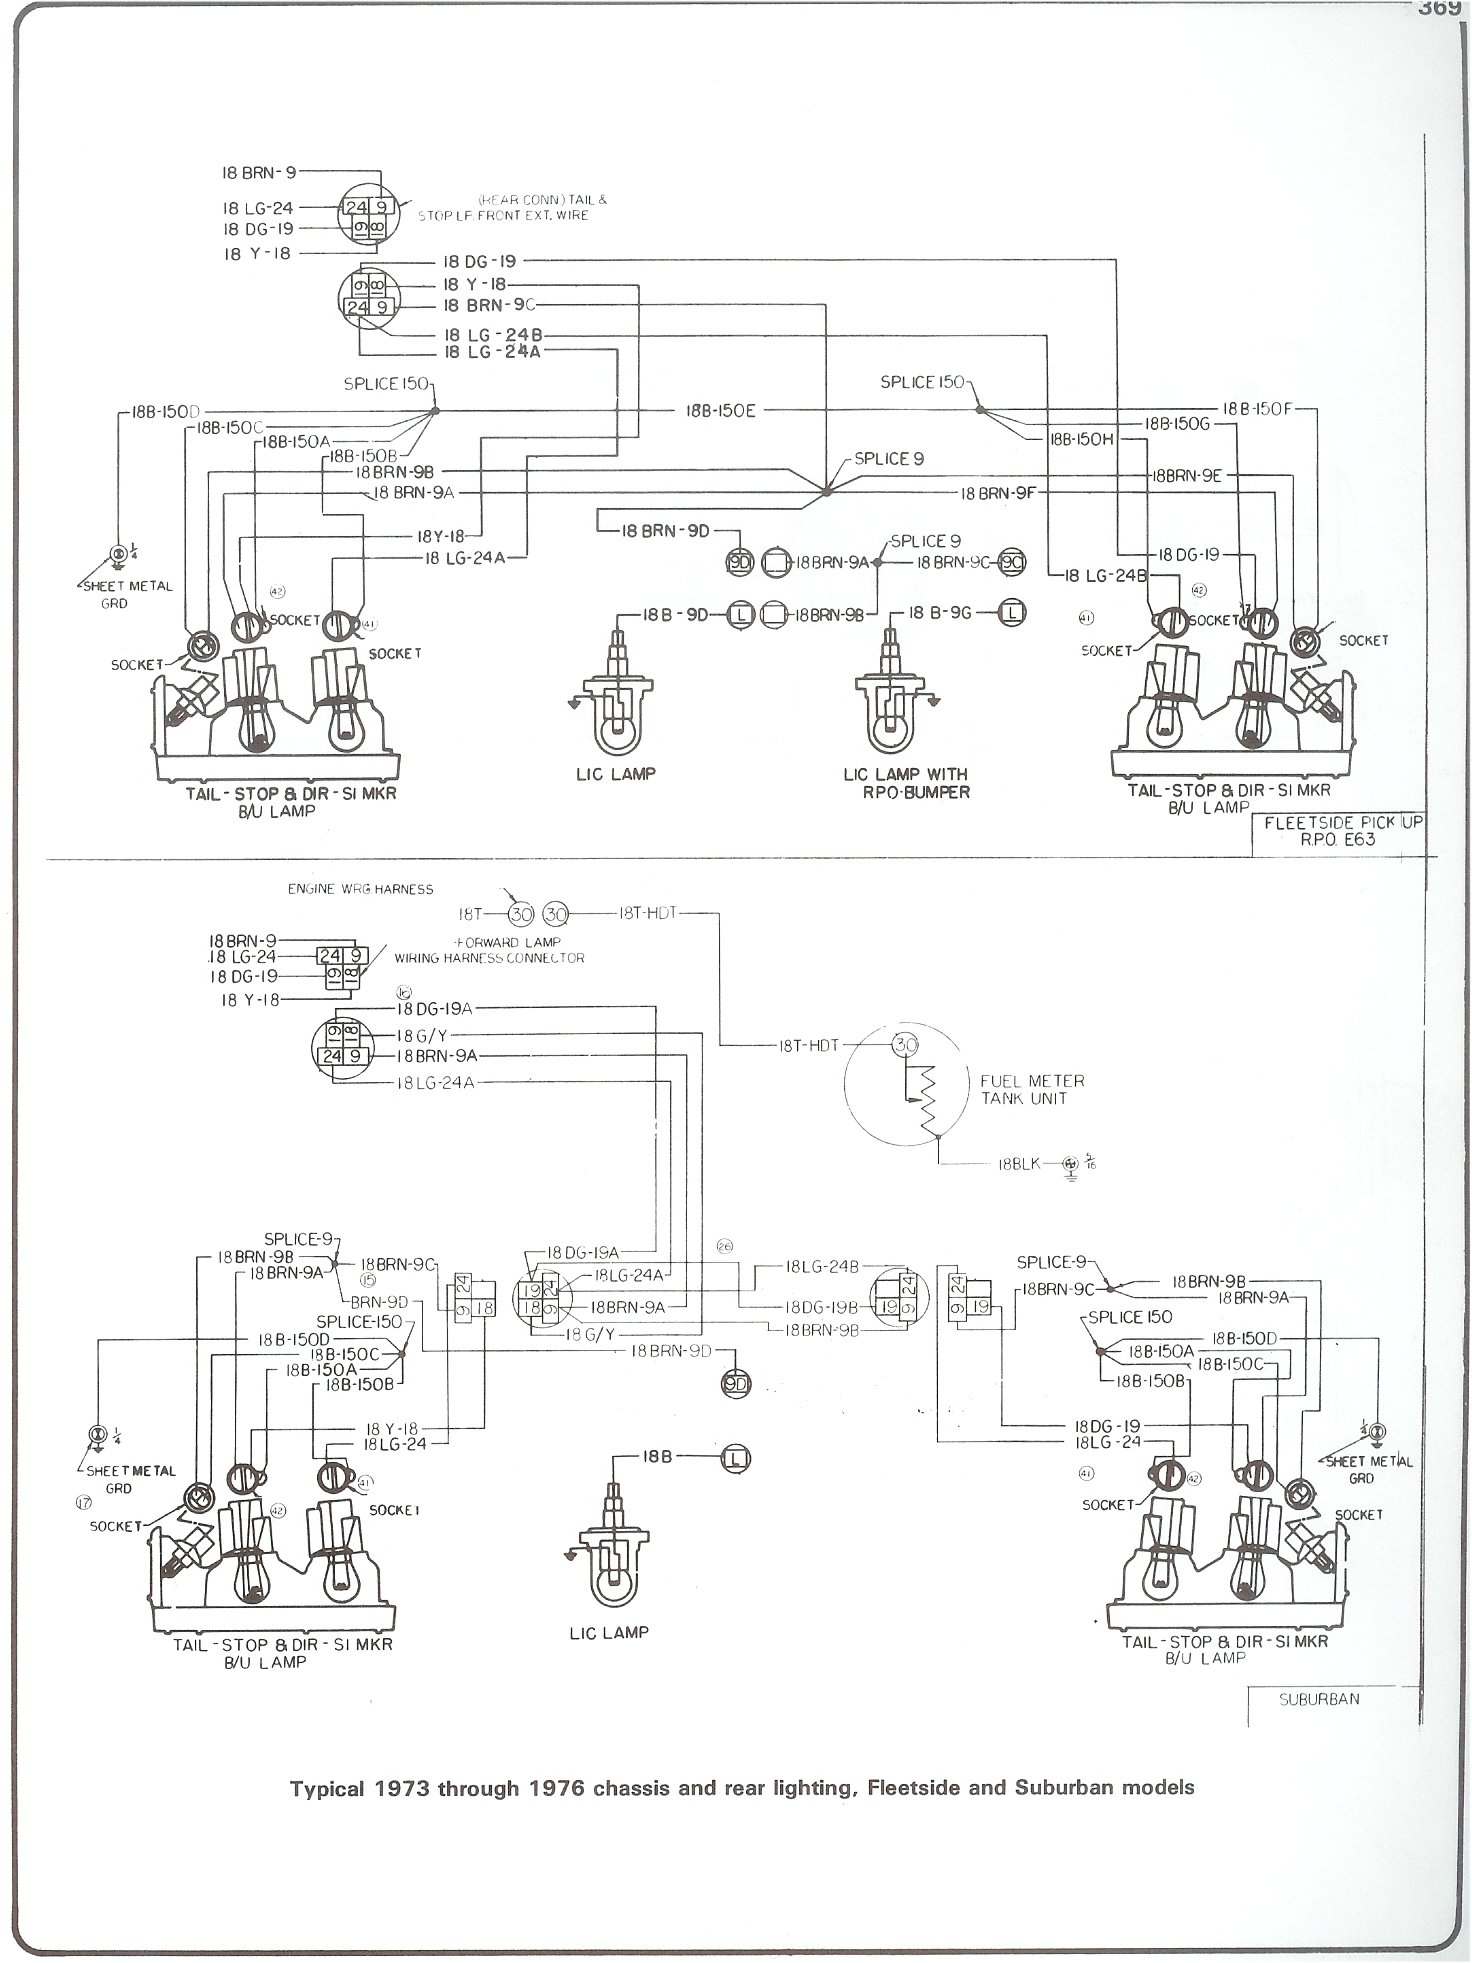 Complete 73-87 Wiring Diagrams - 87 Chevy Truck Wiring Diagram